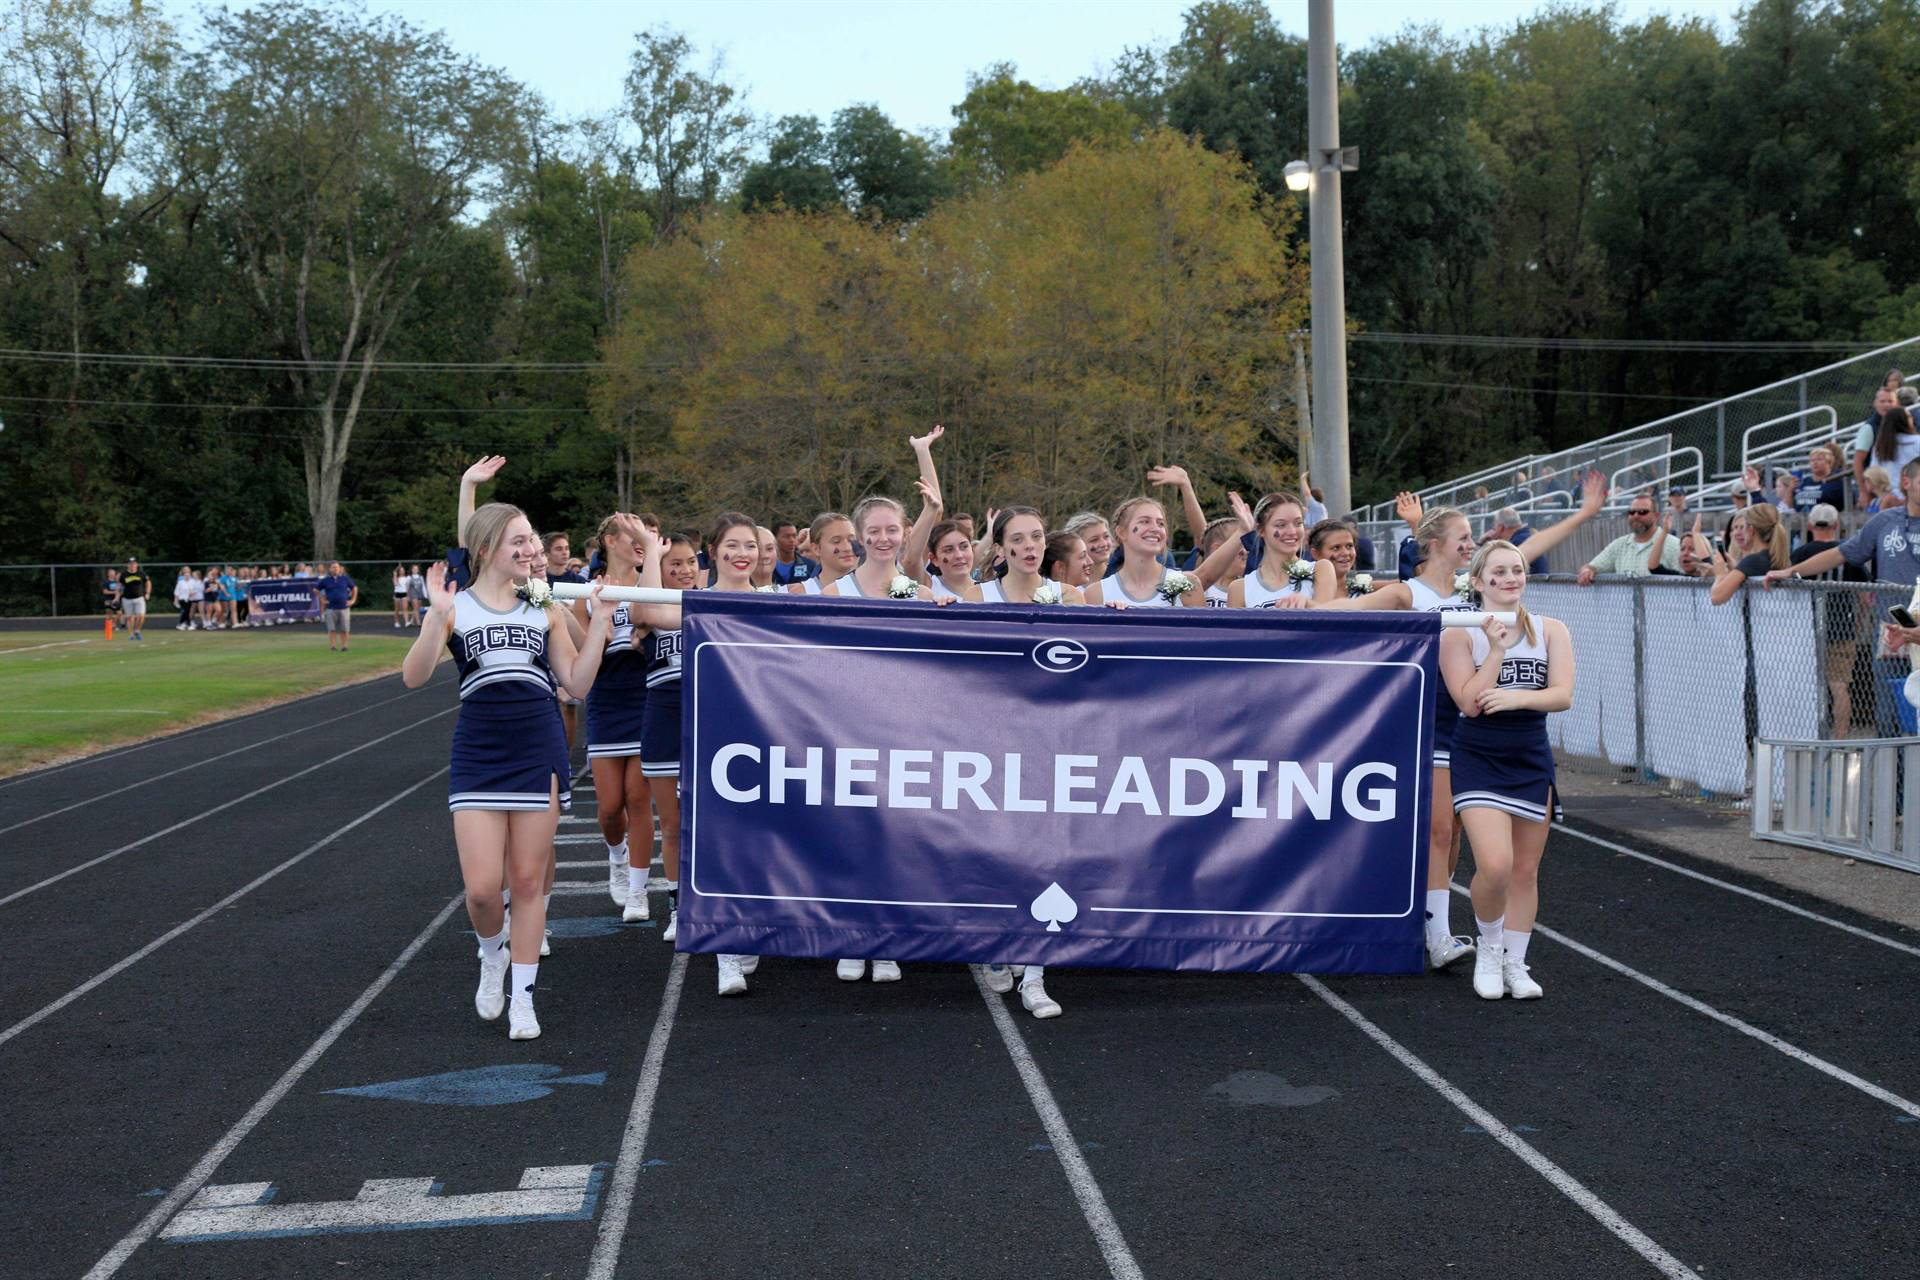 Cheerleaders in Homecoming Parade